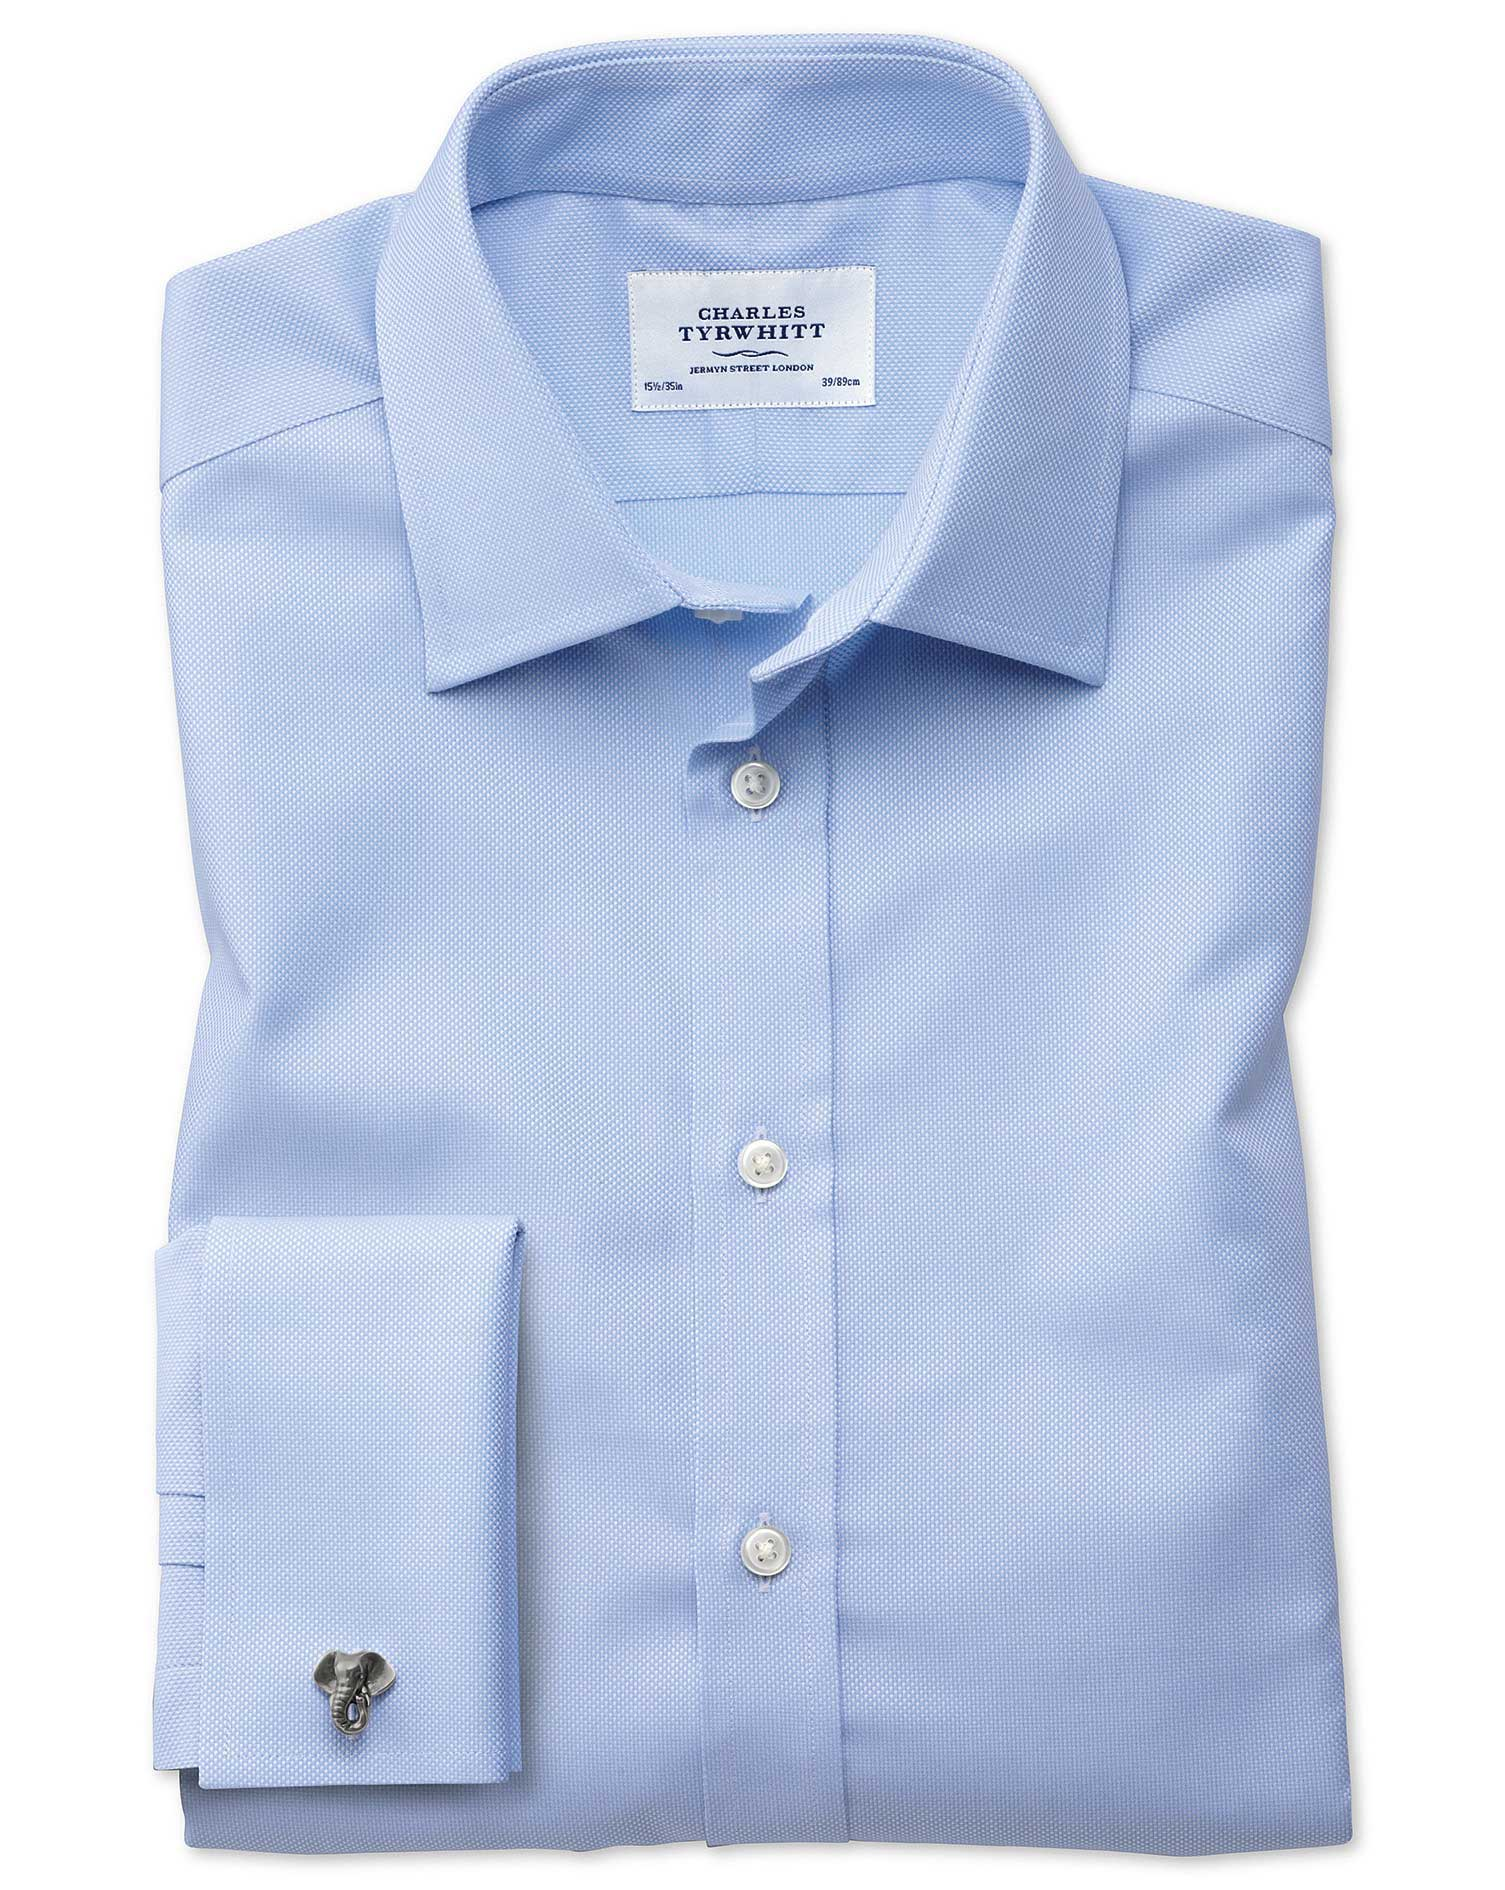 Extra Slim Fit Egyptian Cotton Royal Oxford Sky Blue Formal Shirt Double Cuff Size 16/34 by Charles